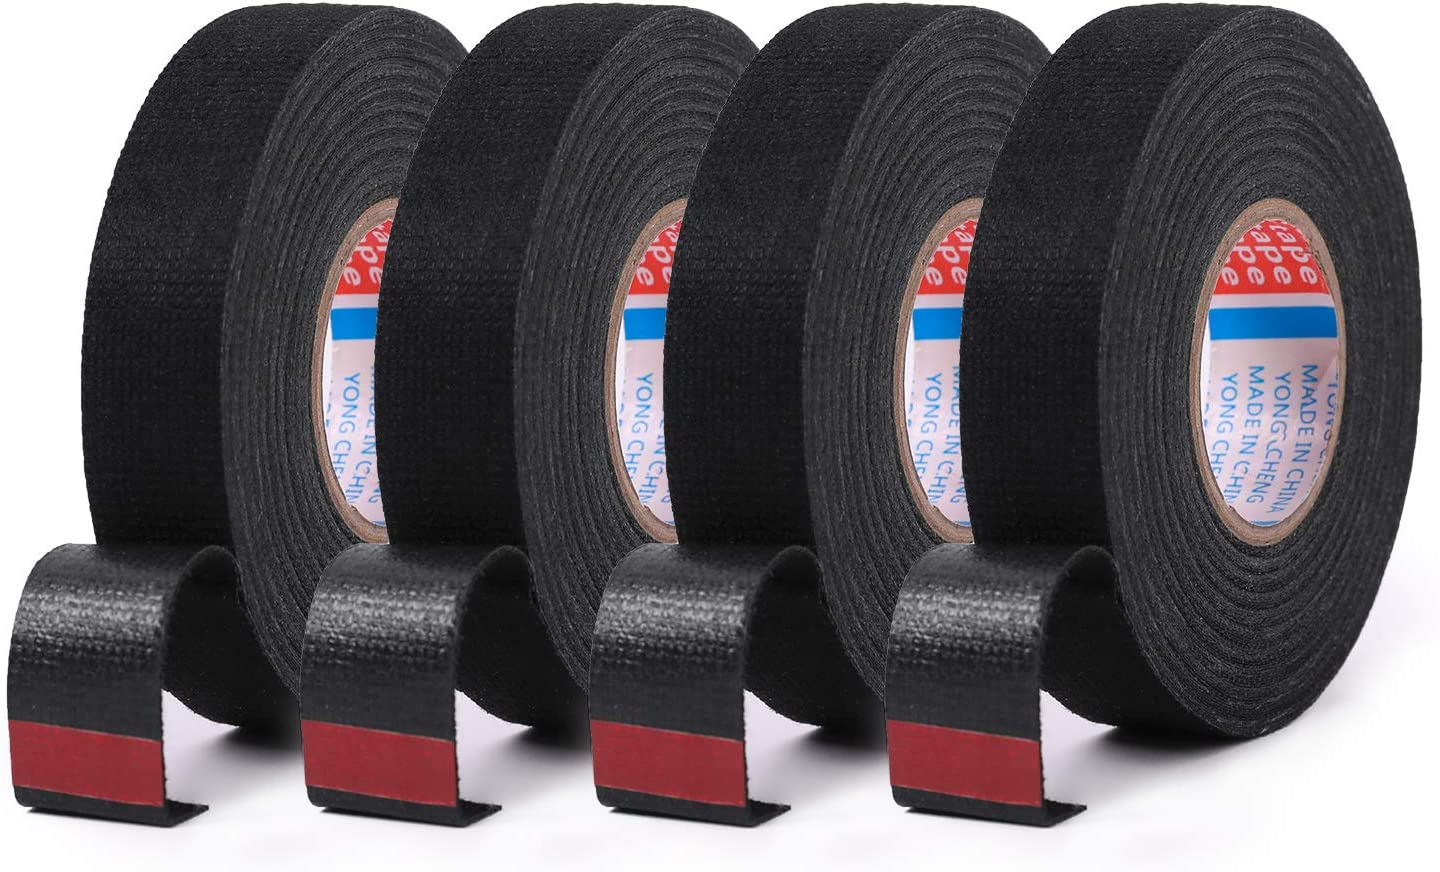 HSTECH Wire Harness Tape, 3/4-Inch by 50-Foot (4 Pack), Speaker Wiring Harness Cloth Tape, Black Adhesive Fabric Tape, for Automobile Electrical Wire harnessing Noise Dampening Heat Proof